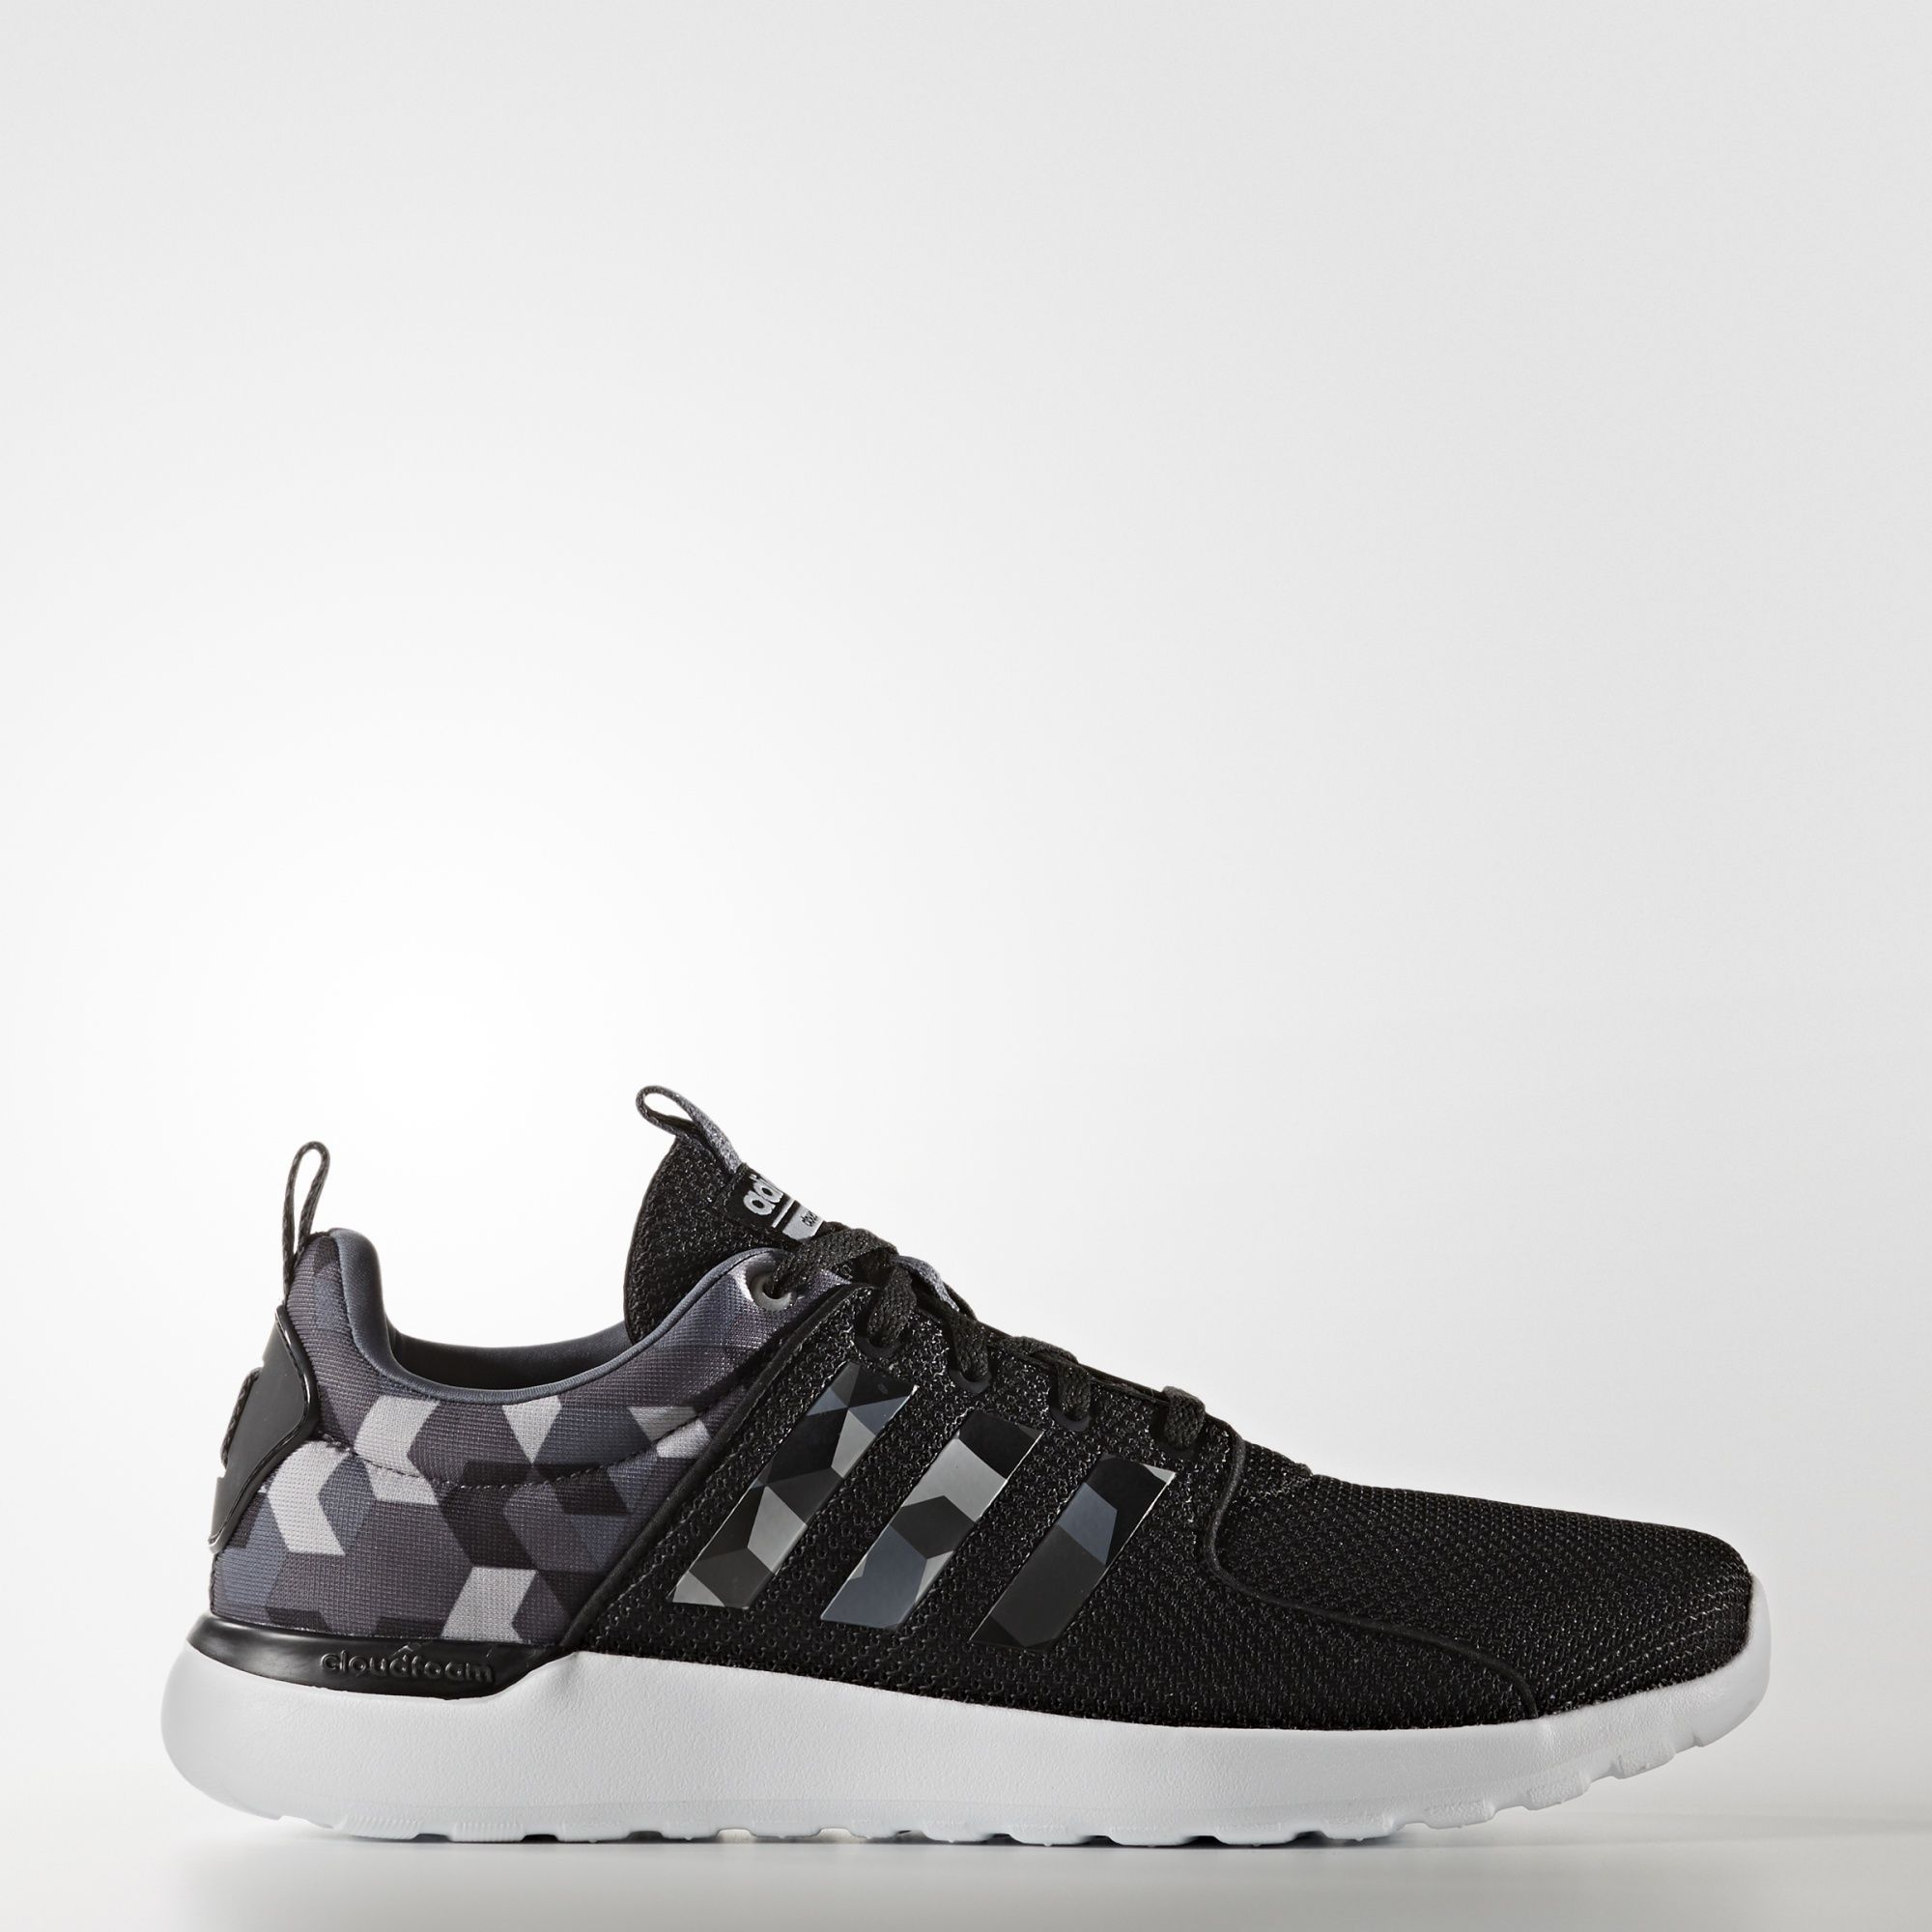 adidas - Cloudfoam Lite Racer Shoes